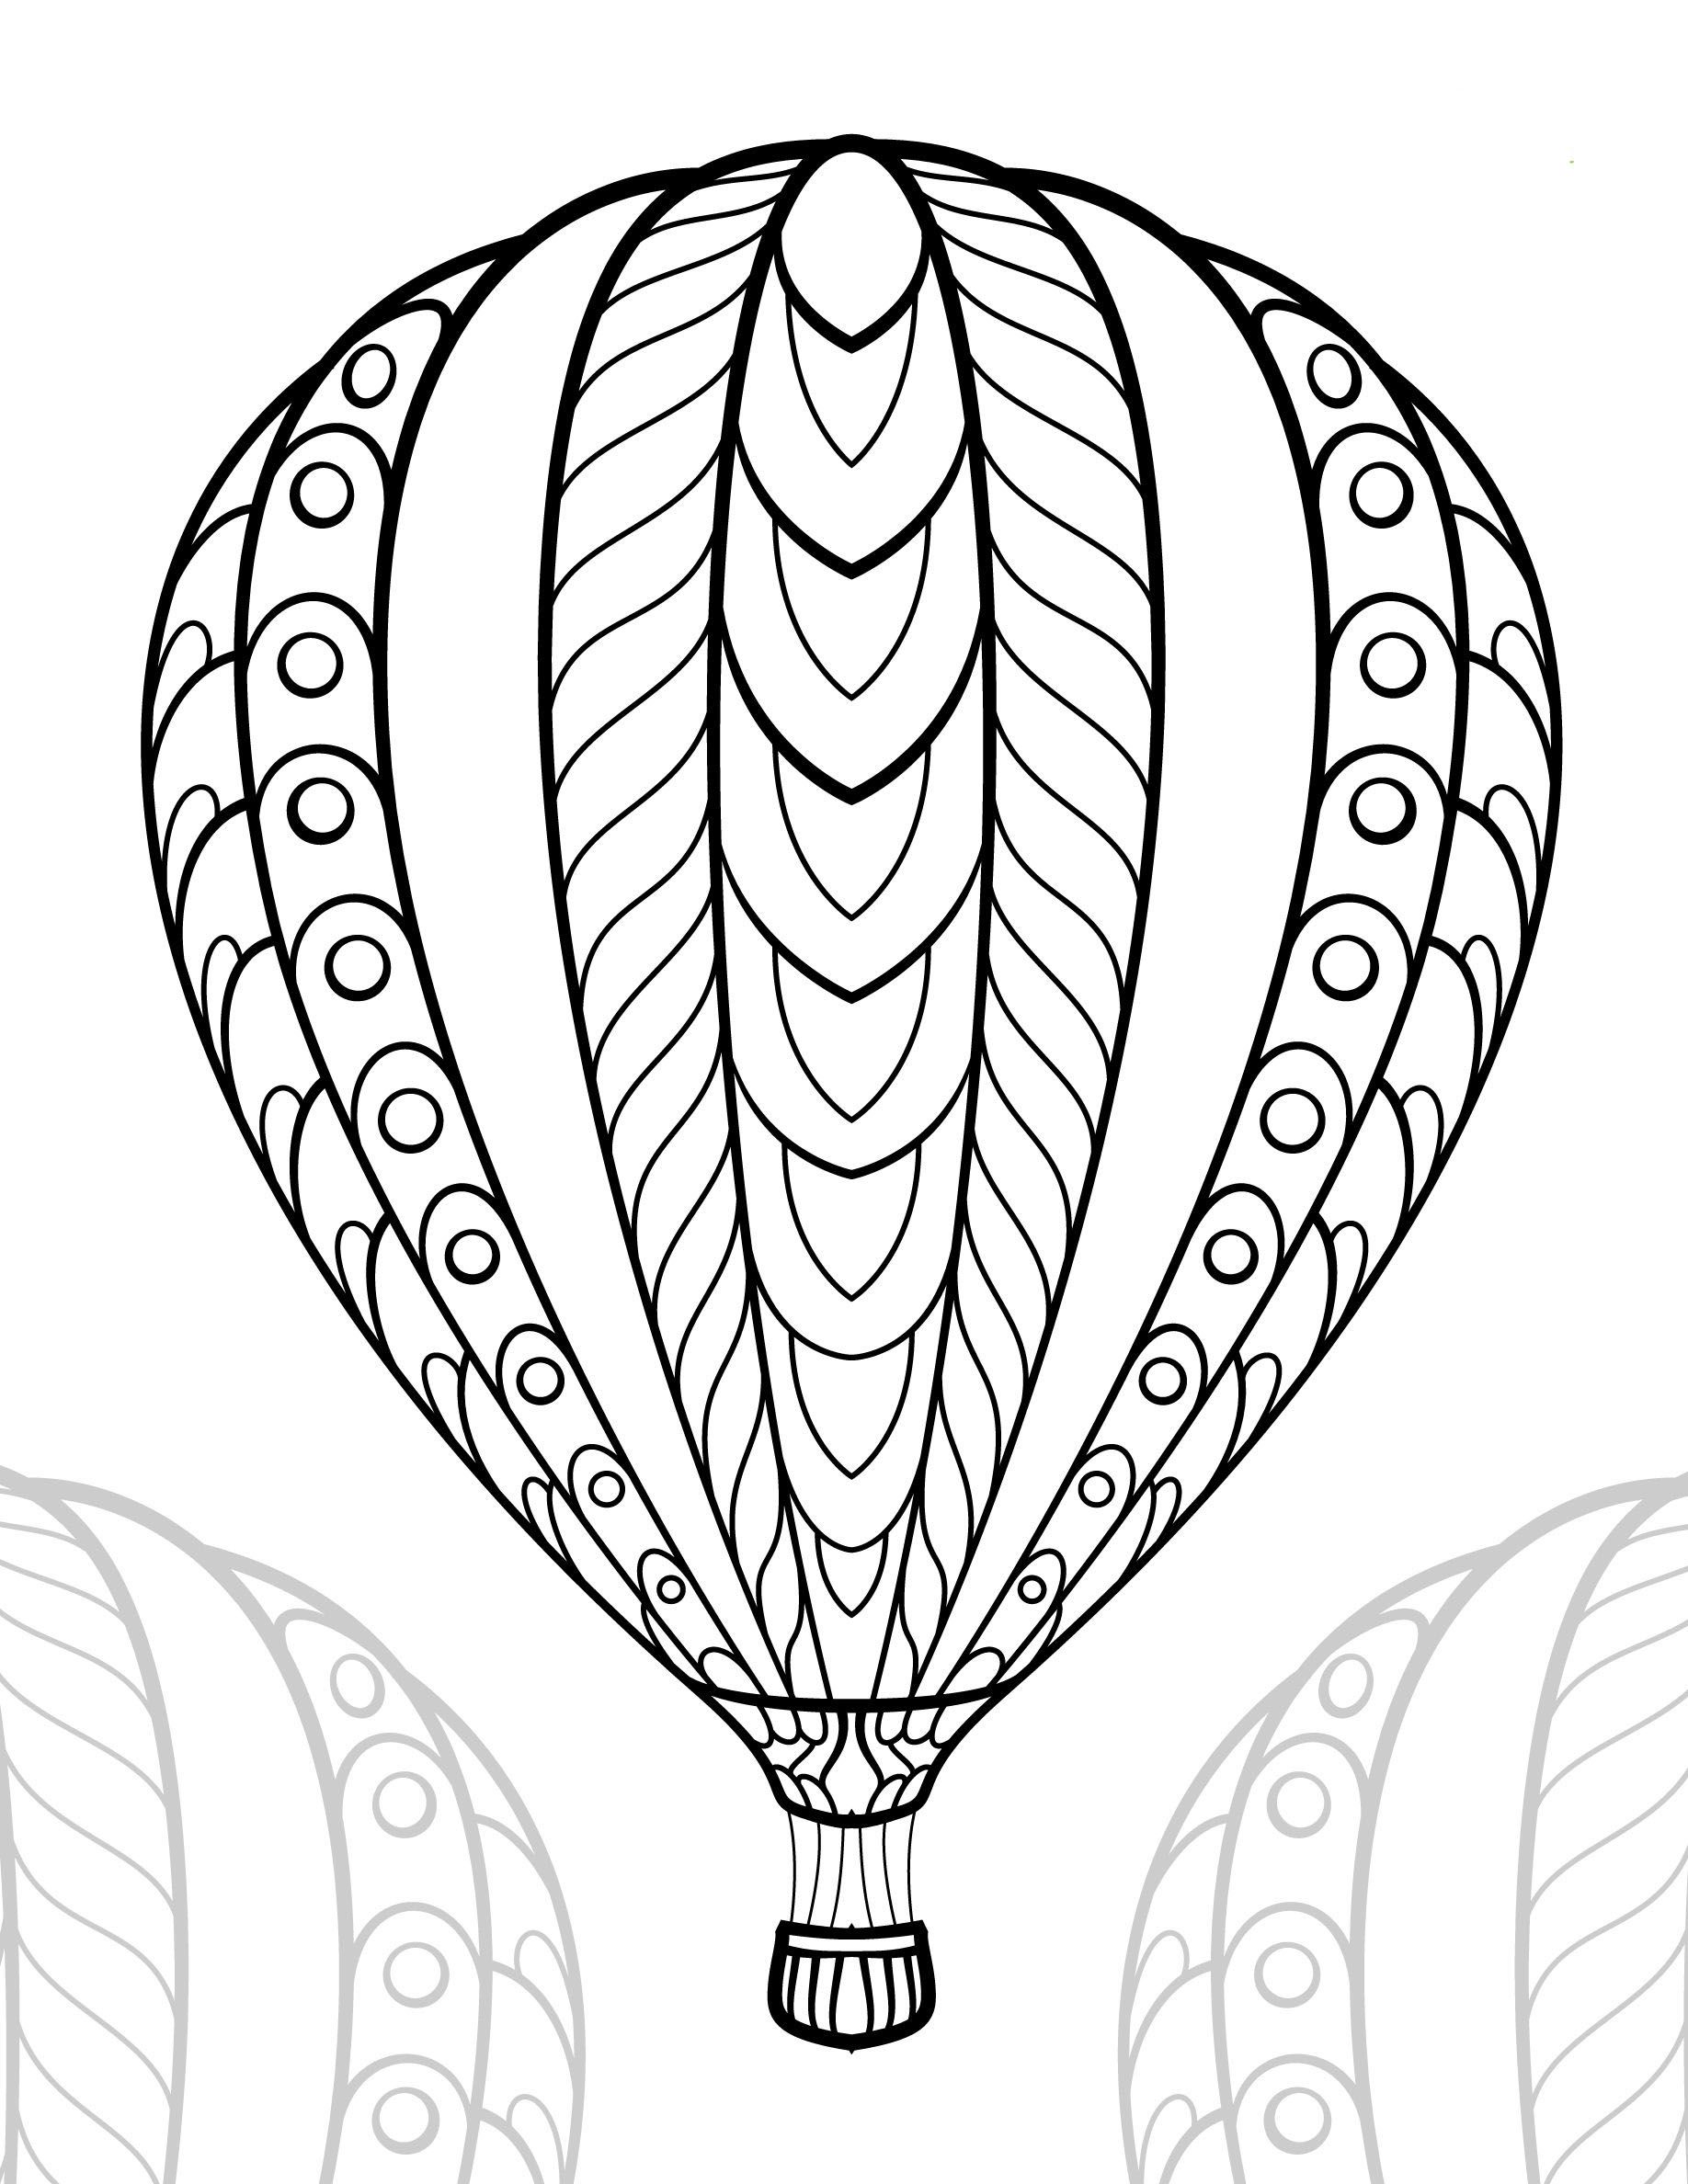 Hot Air Balloon Coloring Pages For Girls In 2020 Hot Air Balloon Drawing